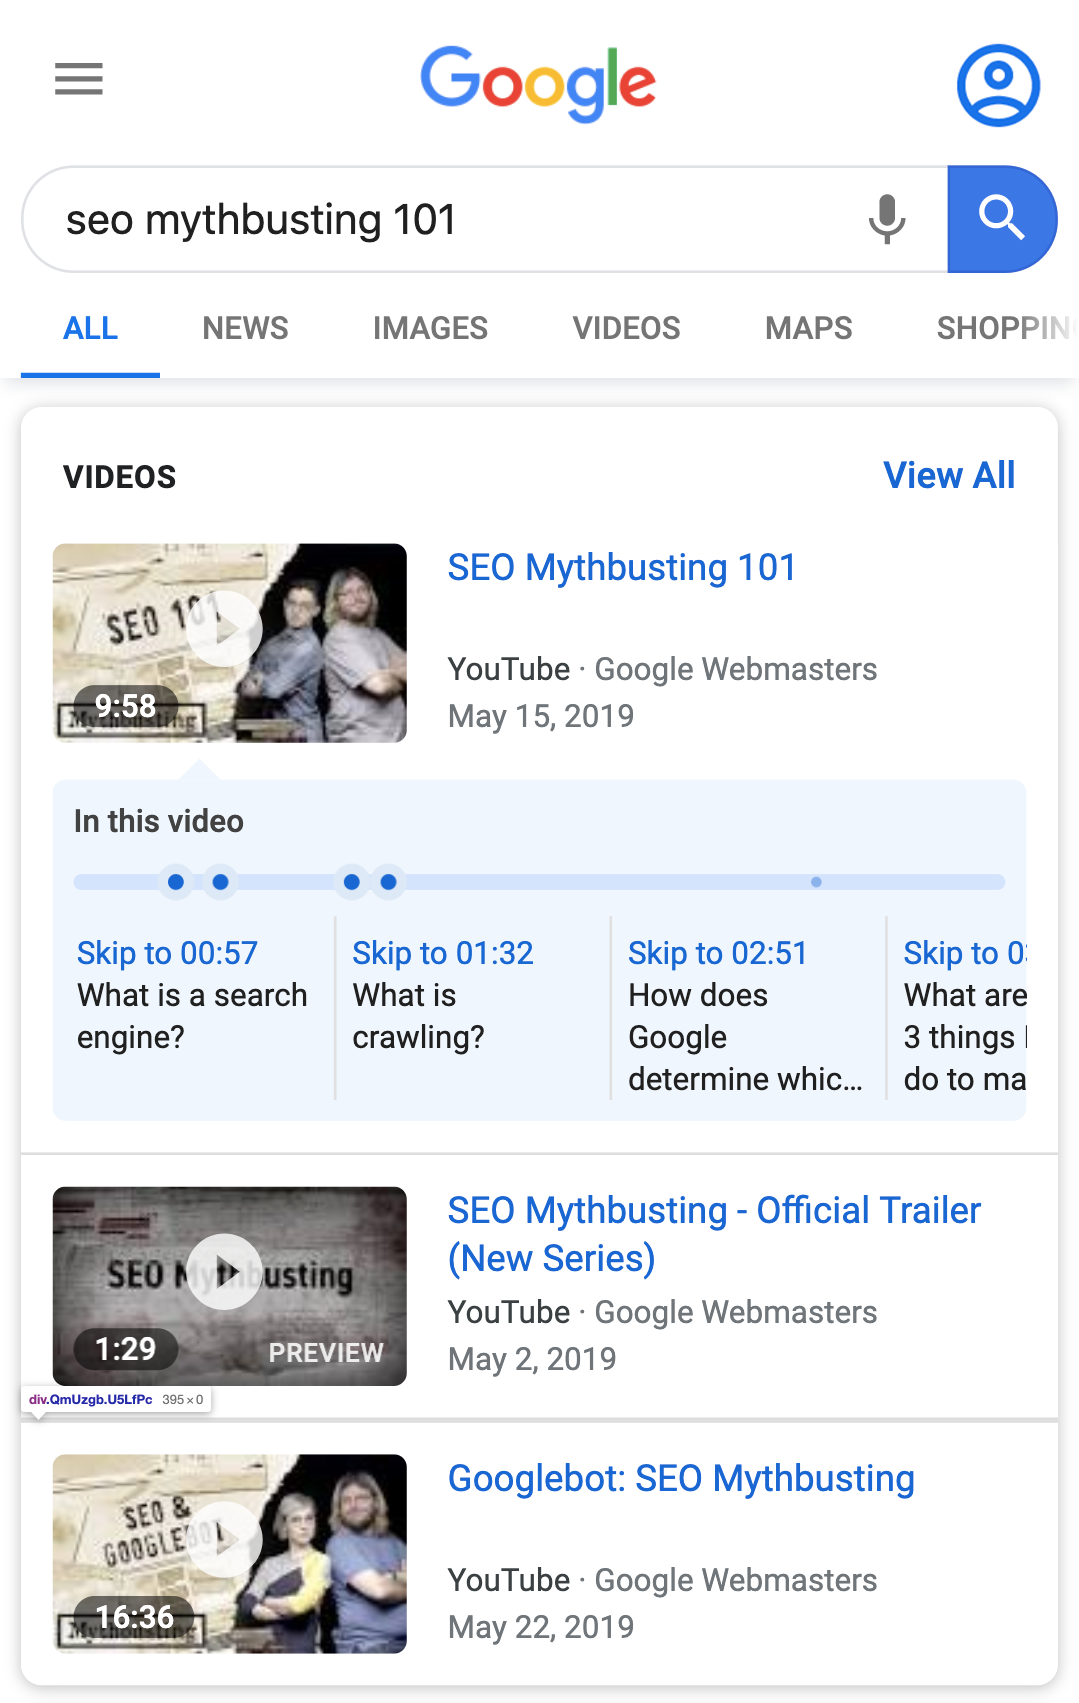 Video key moments marked up